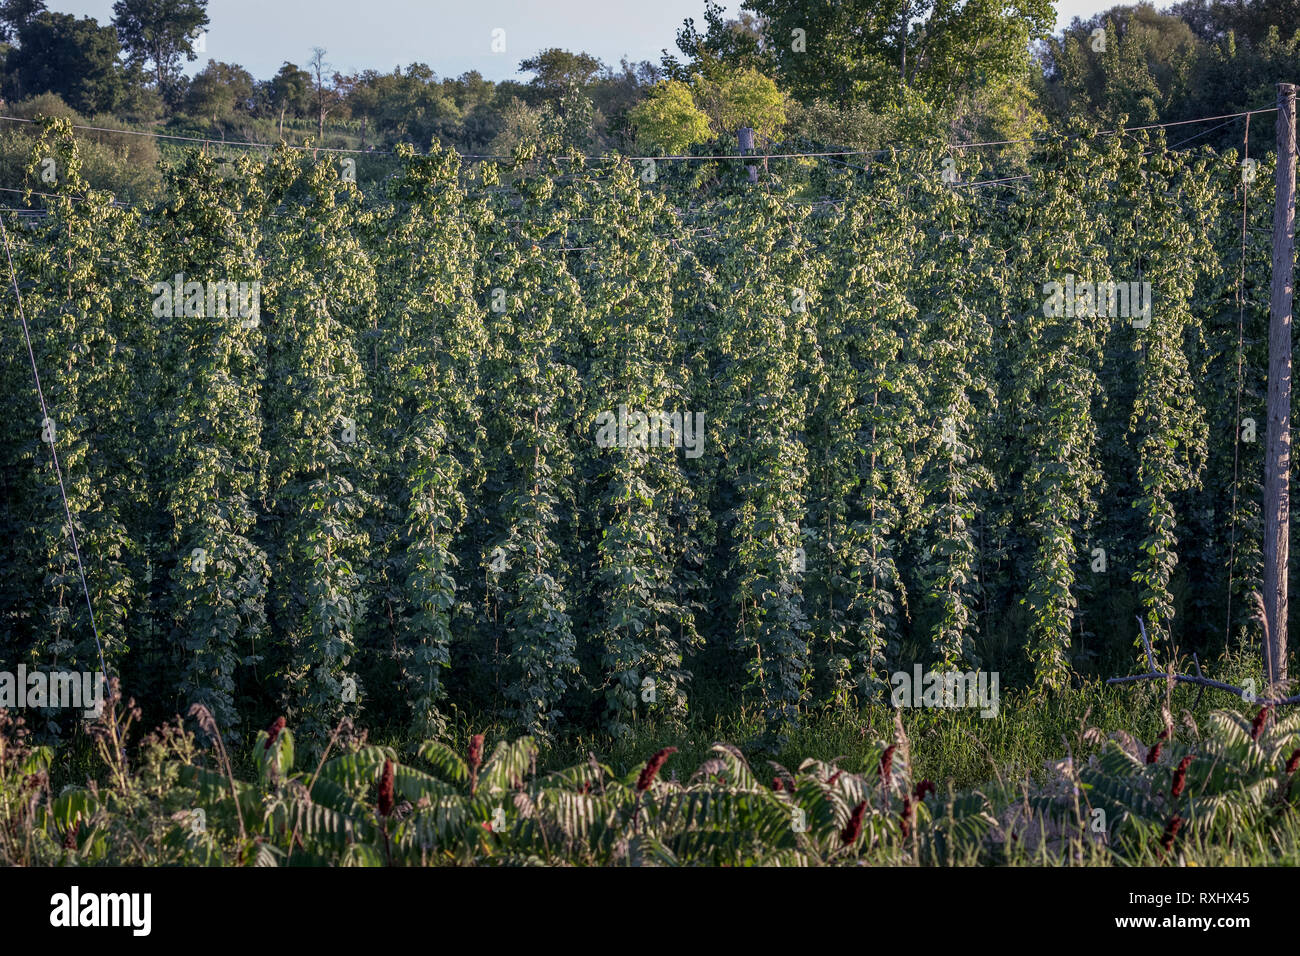 Crop of Hops in Prince Edward County, Ontario, Canada - Hops are used in the beer making industry - Stock Image